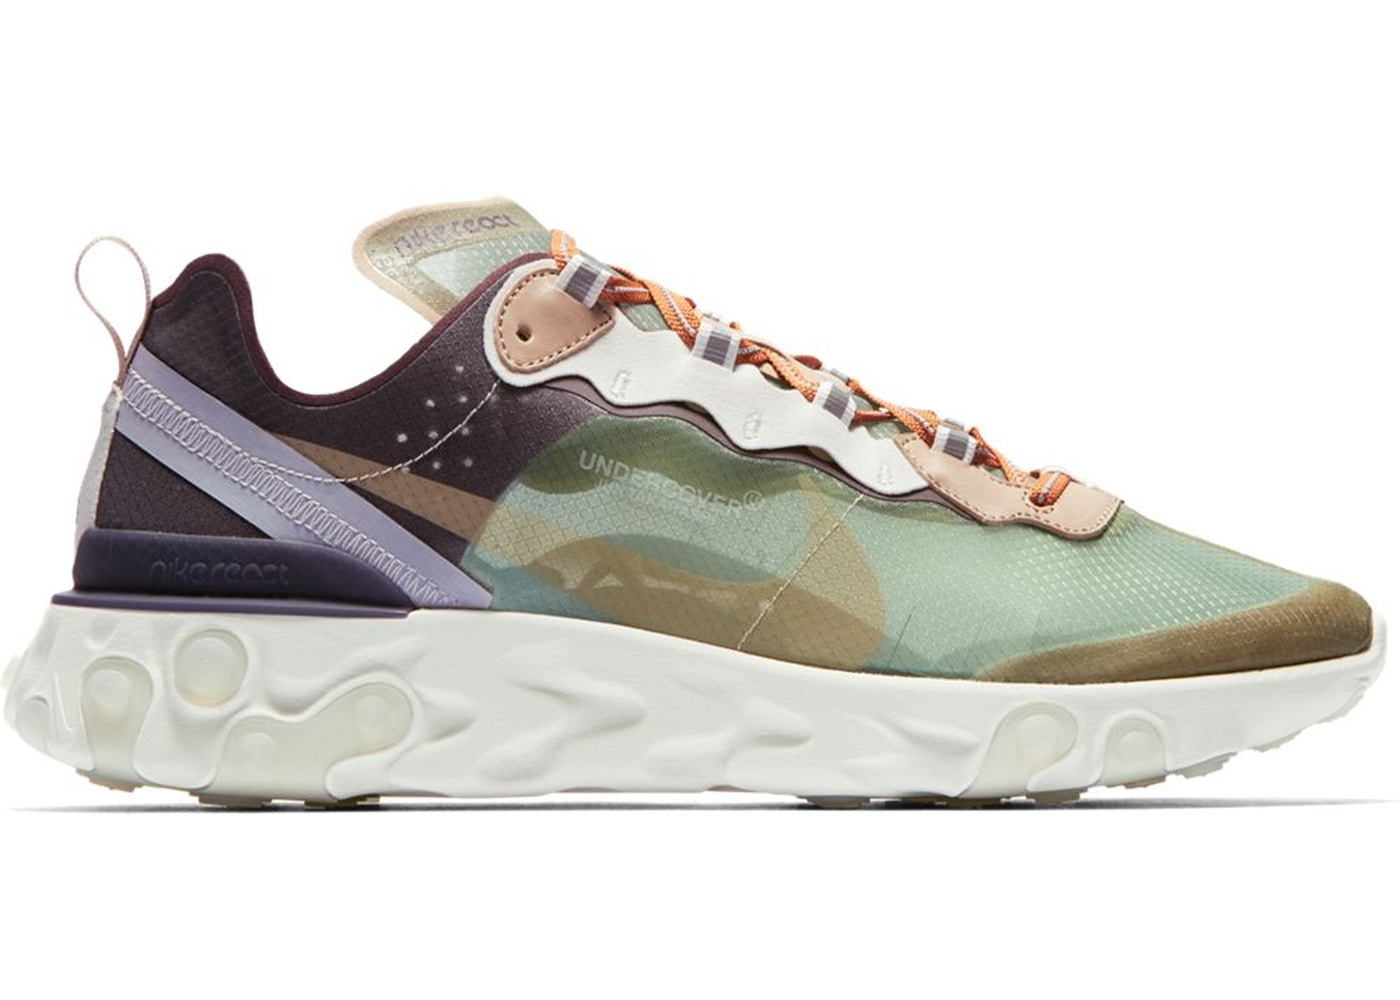 a05639d0e825 Nike React Element 87 Undercover Green Mist - BQ2718-300